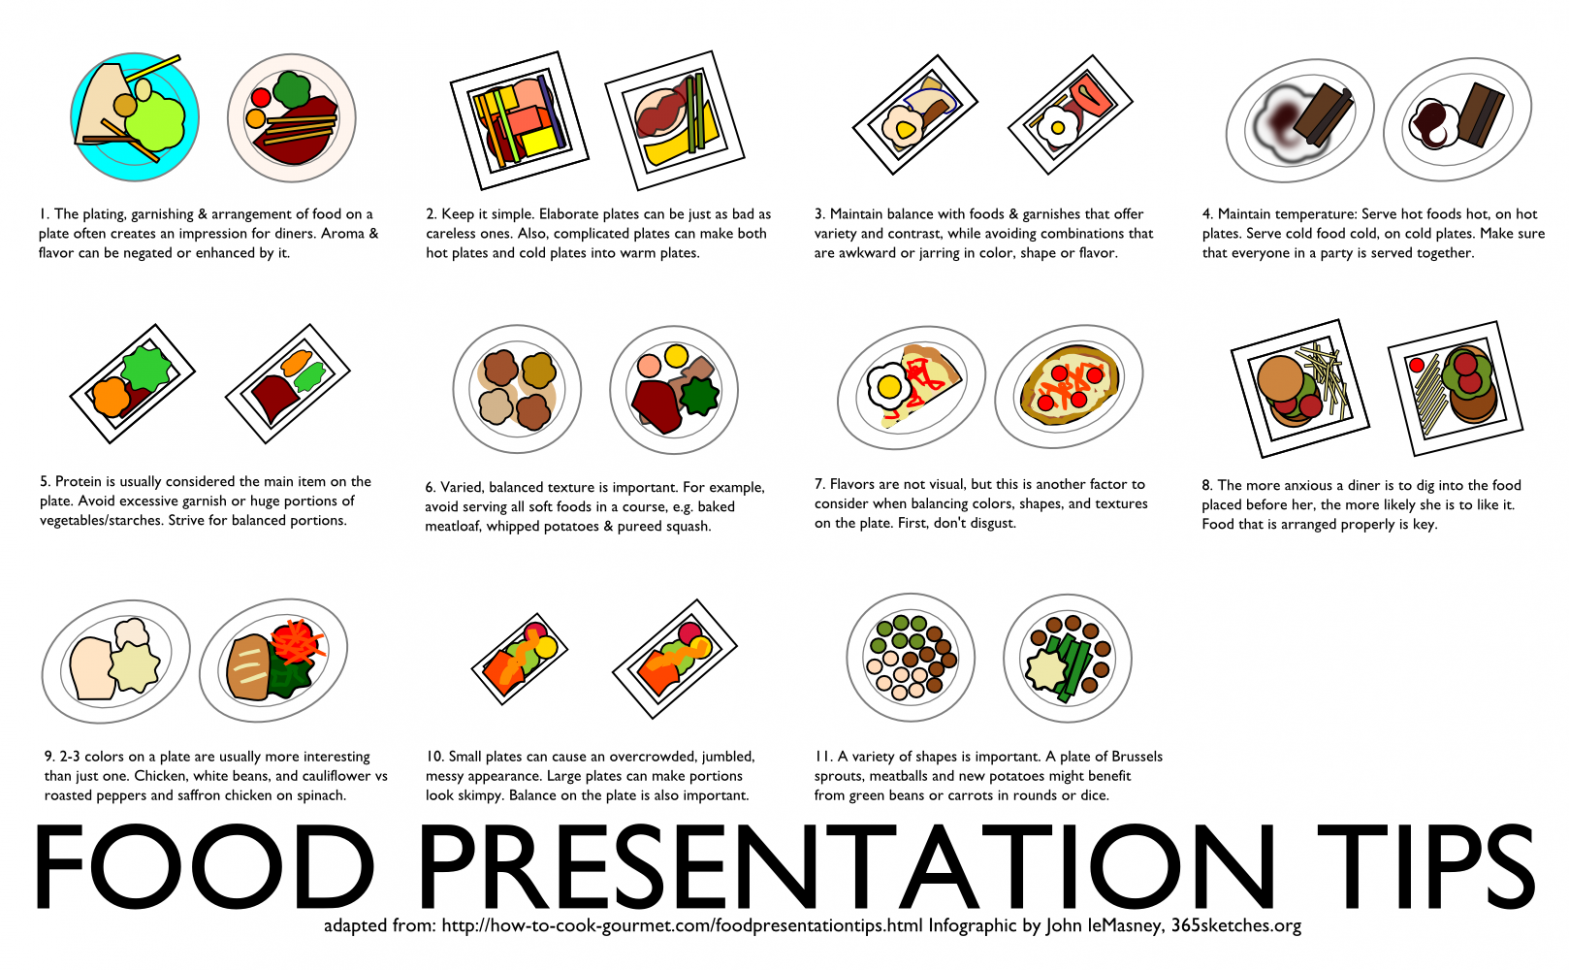 What Are Some Great Food Presentation Hacks? - Quora | Food ..